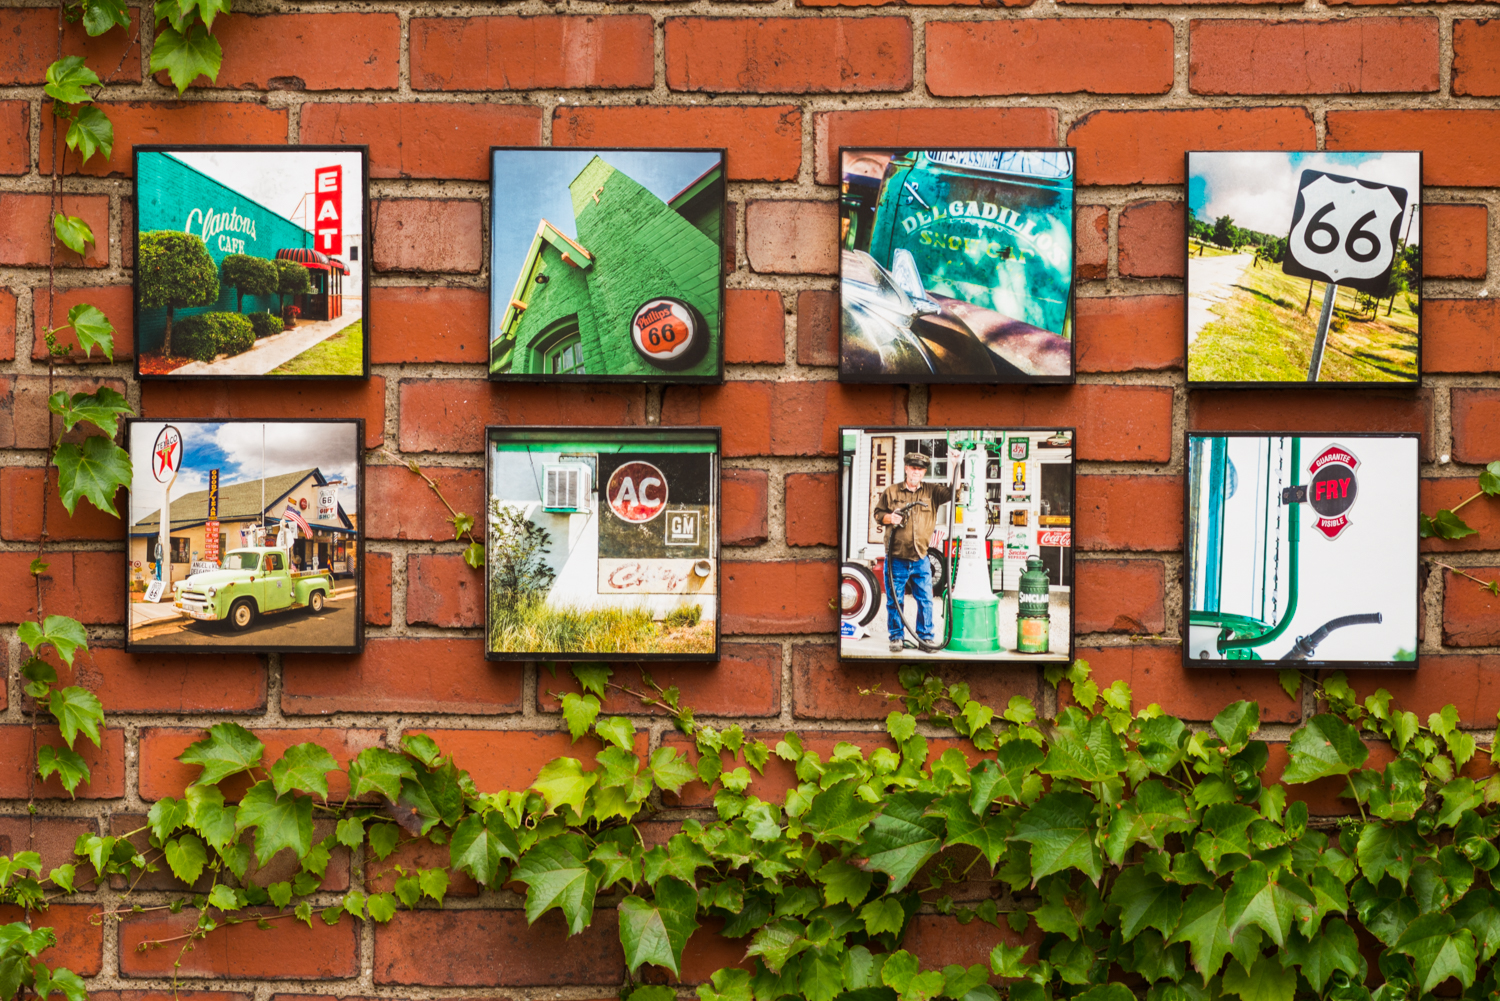 Pics On Route 66 Wood Panel Collage Series On Display June 3rd-5th David Schwartz Photography In Cleveland's Little Italy.